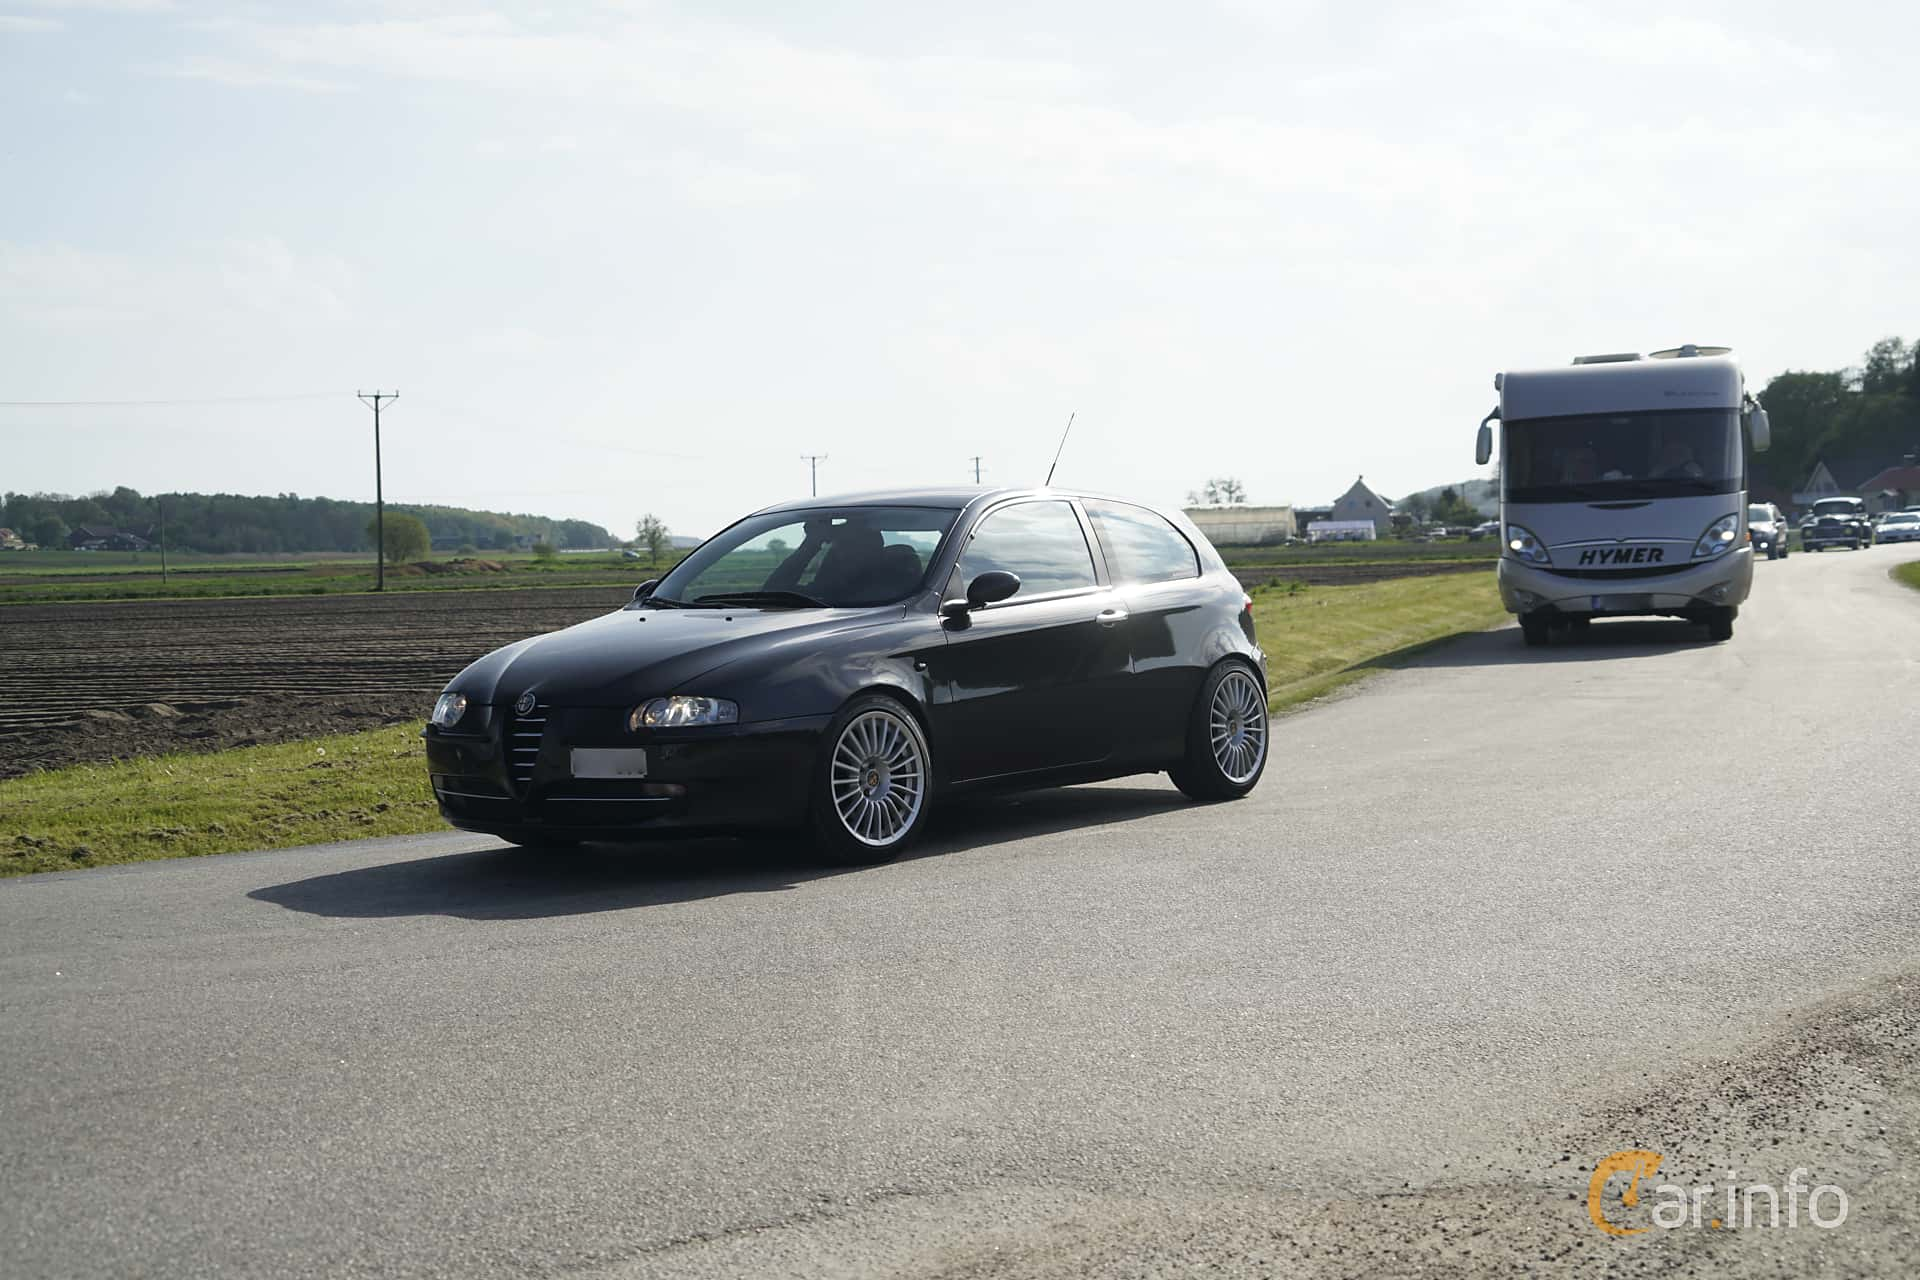 2 Images Of Alfa Romeo 147 3 Door 20 Ts Manual 150hp 2004 By Front Side 150ps